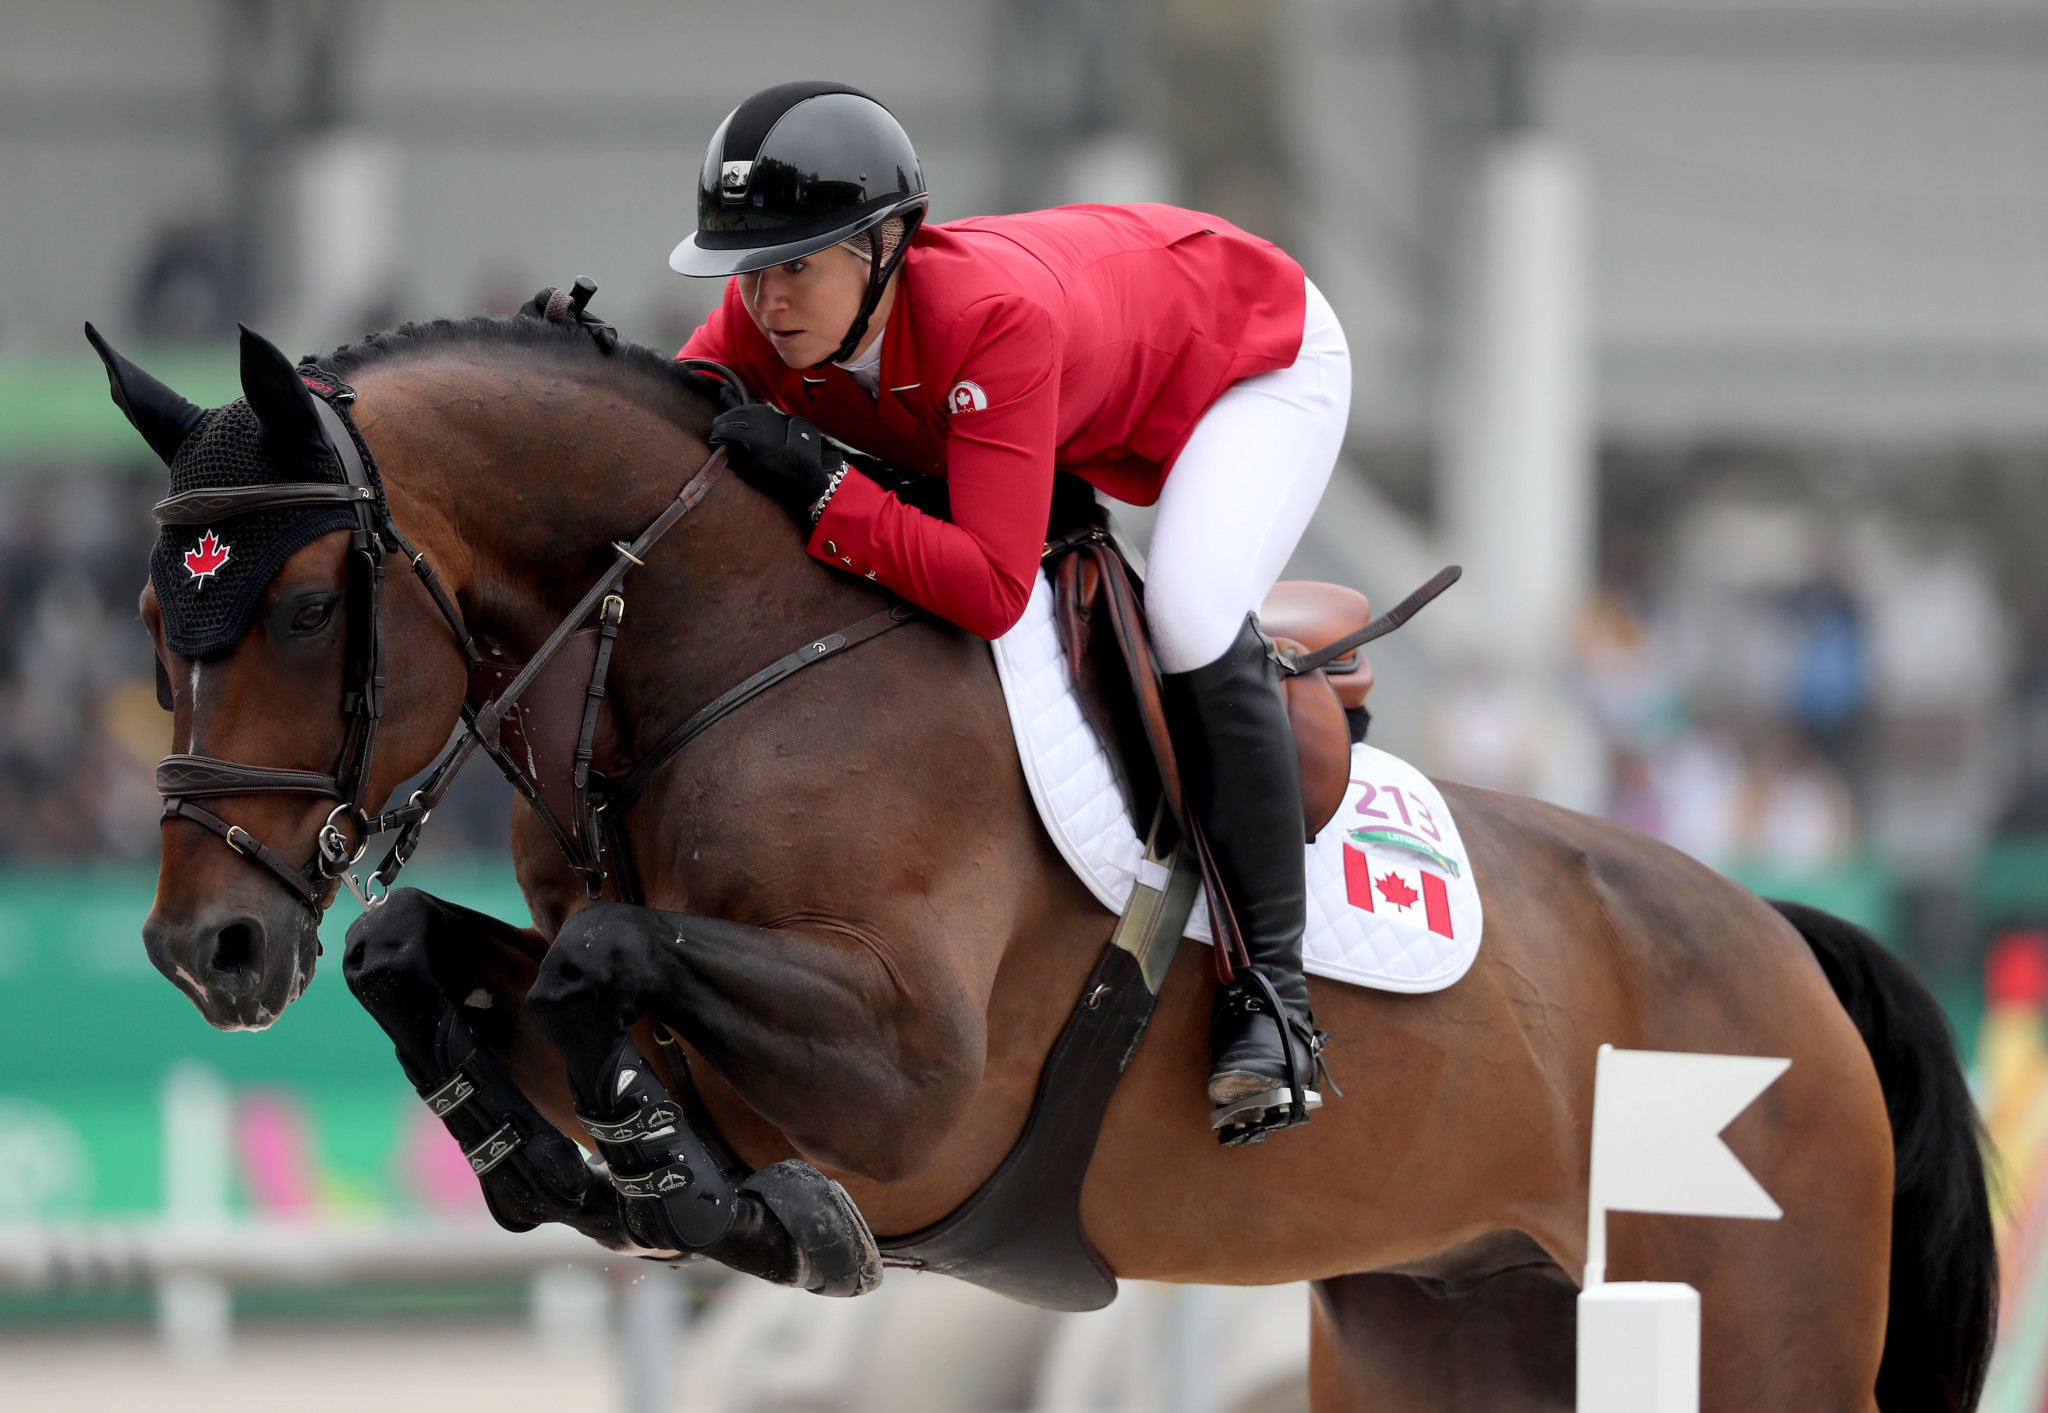 Canada's showjumping team dropped from Tokyo 2020 due to anti-doping violation